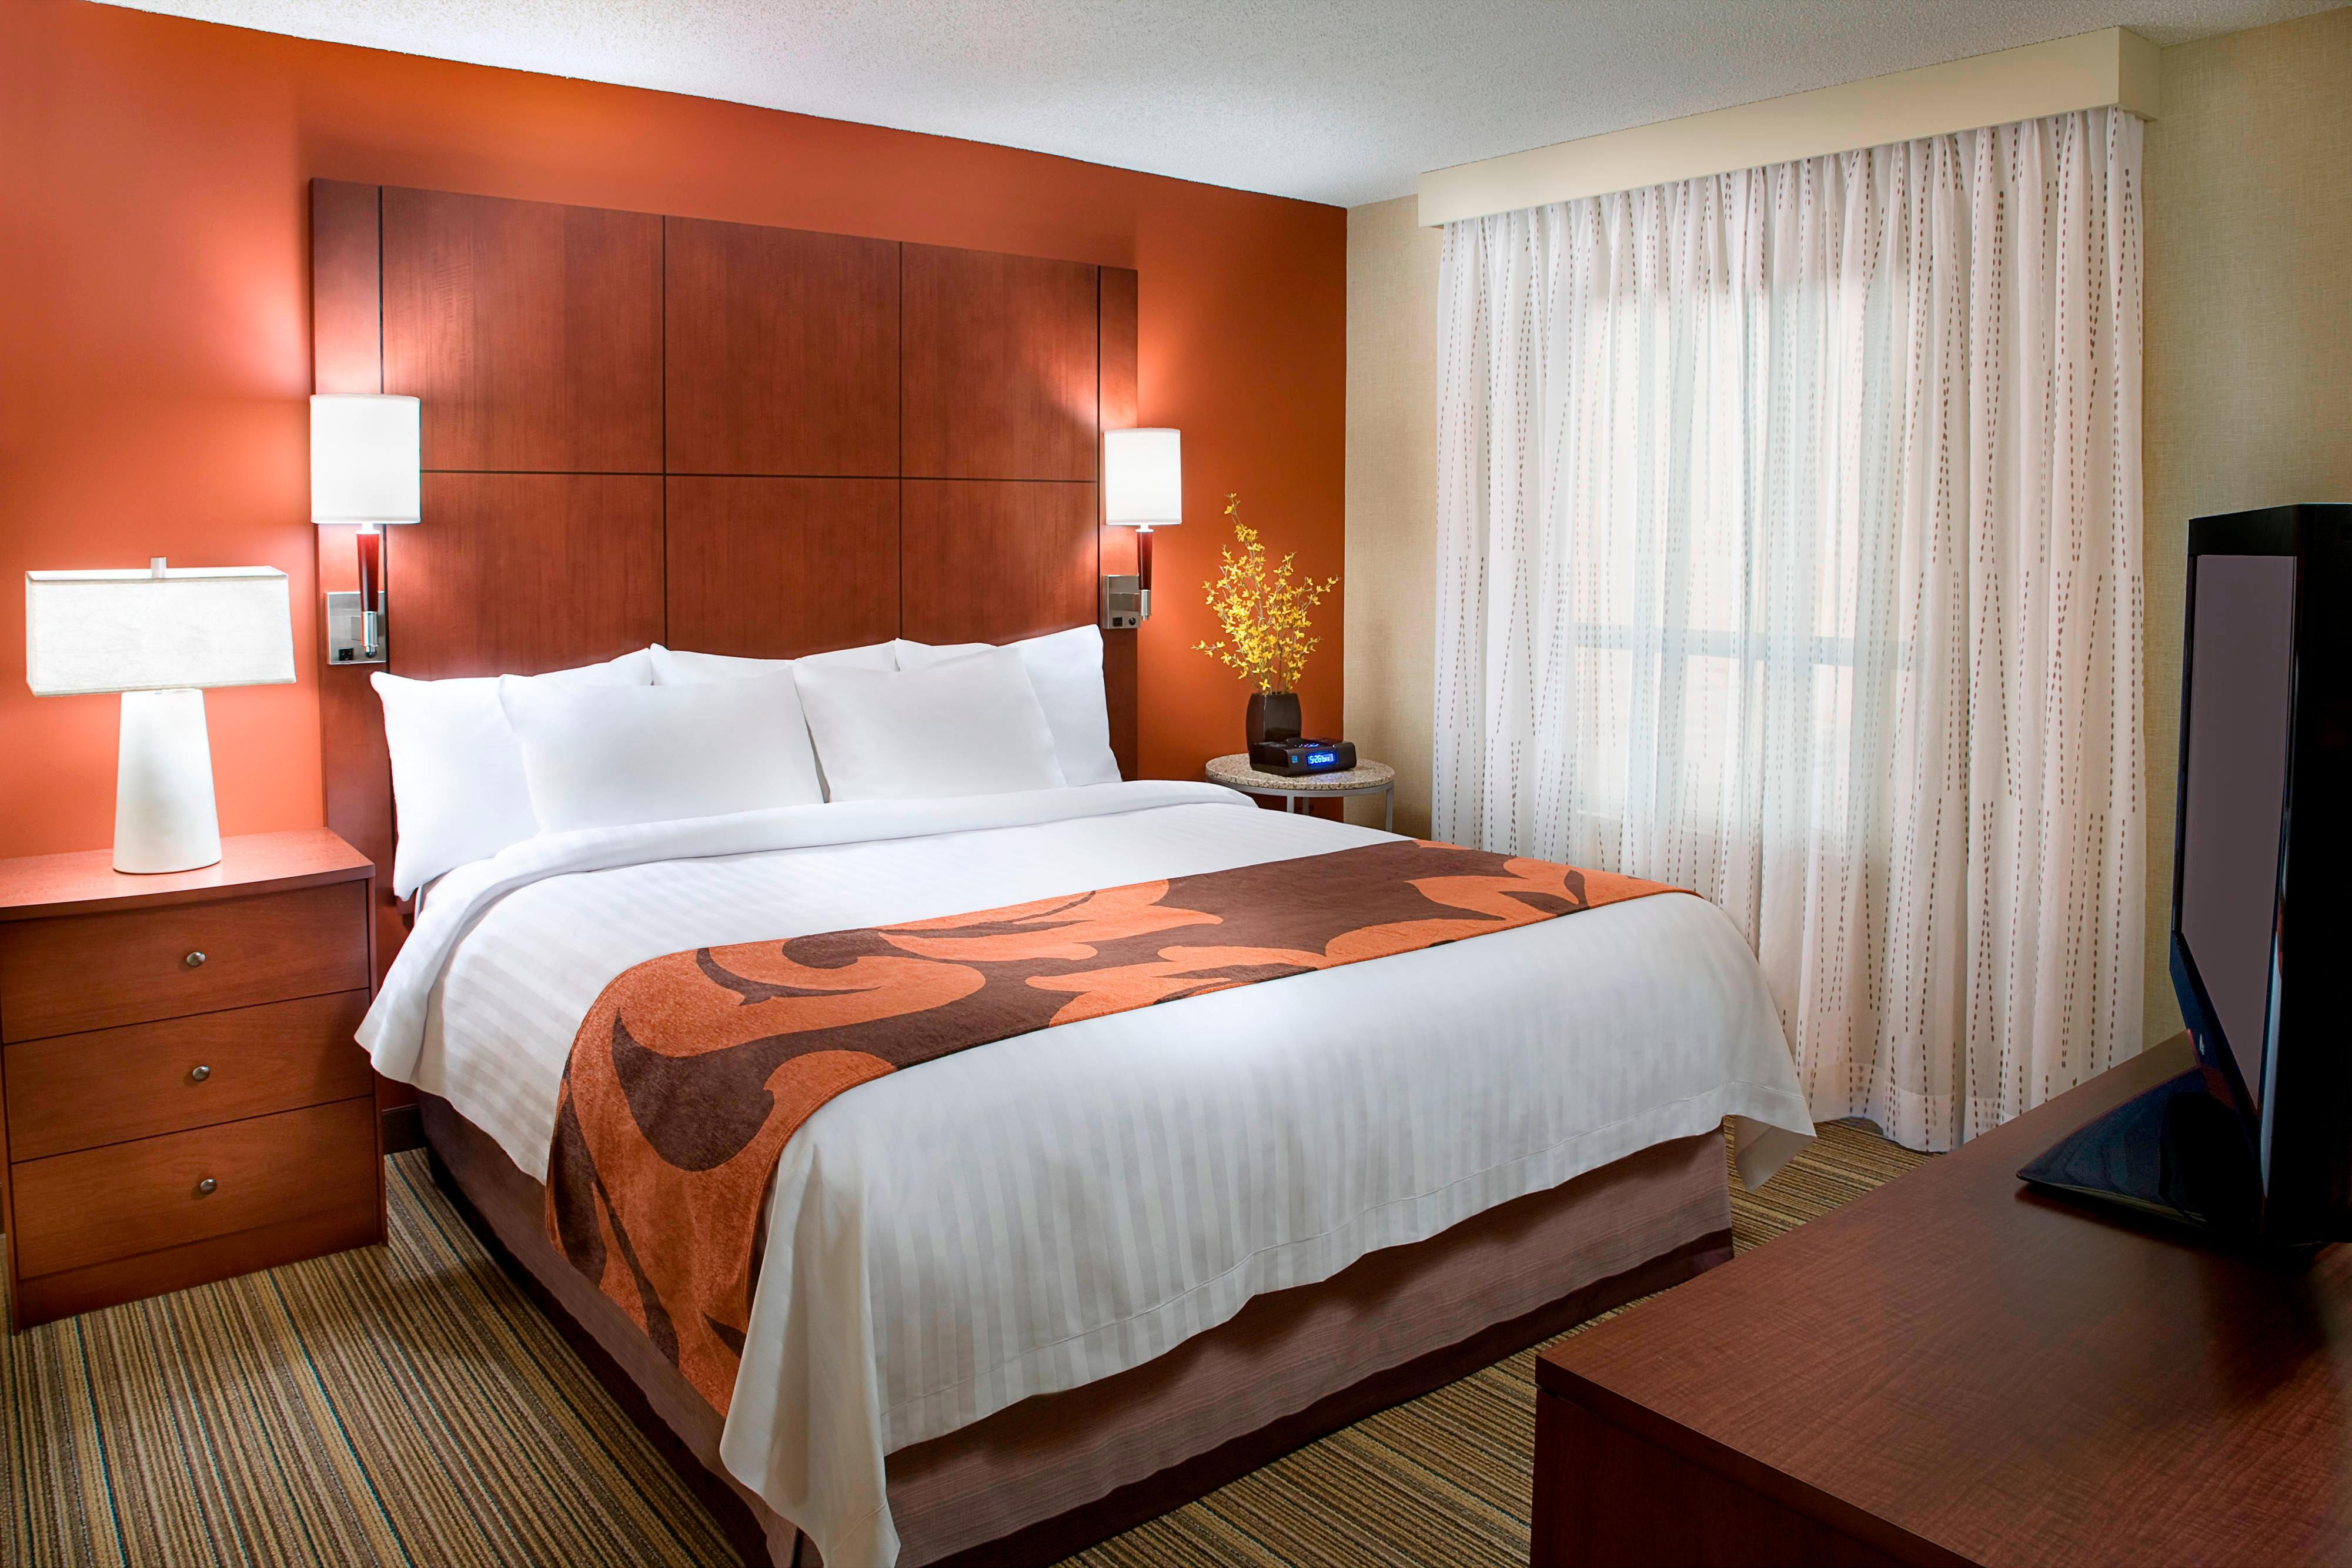 Calgary Airport Hotel Room Bed